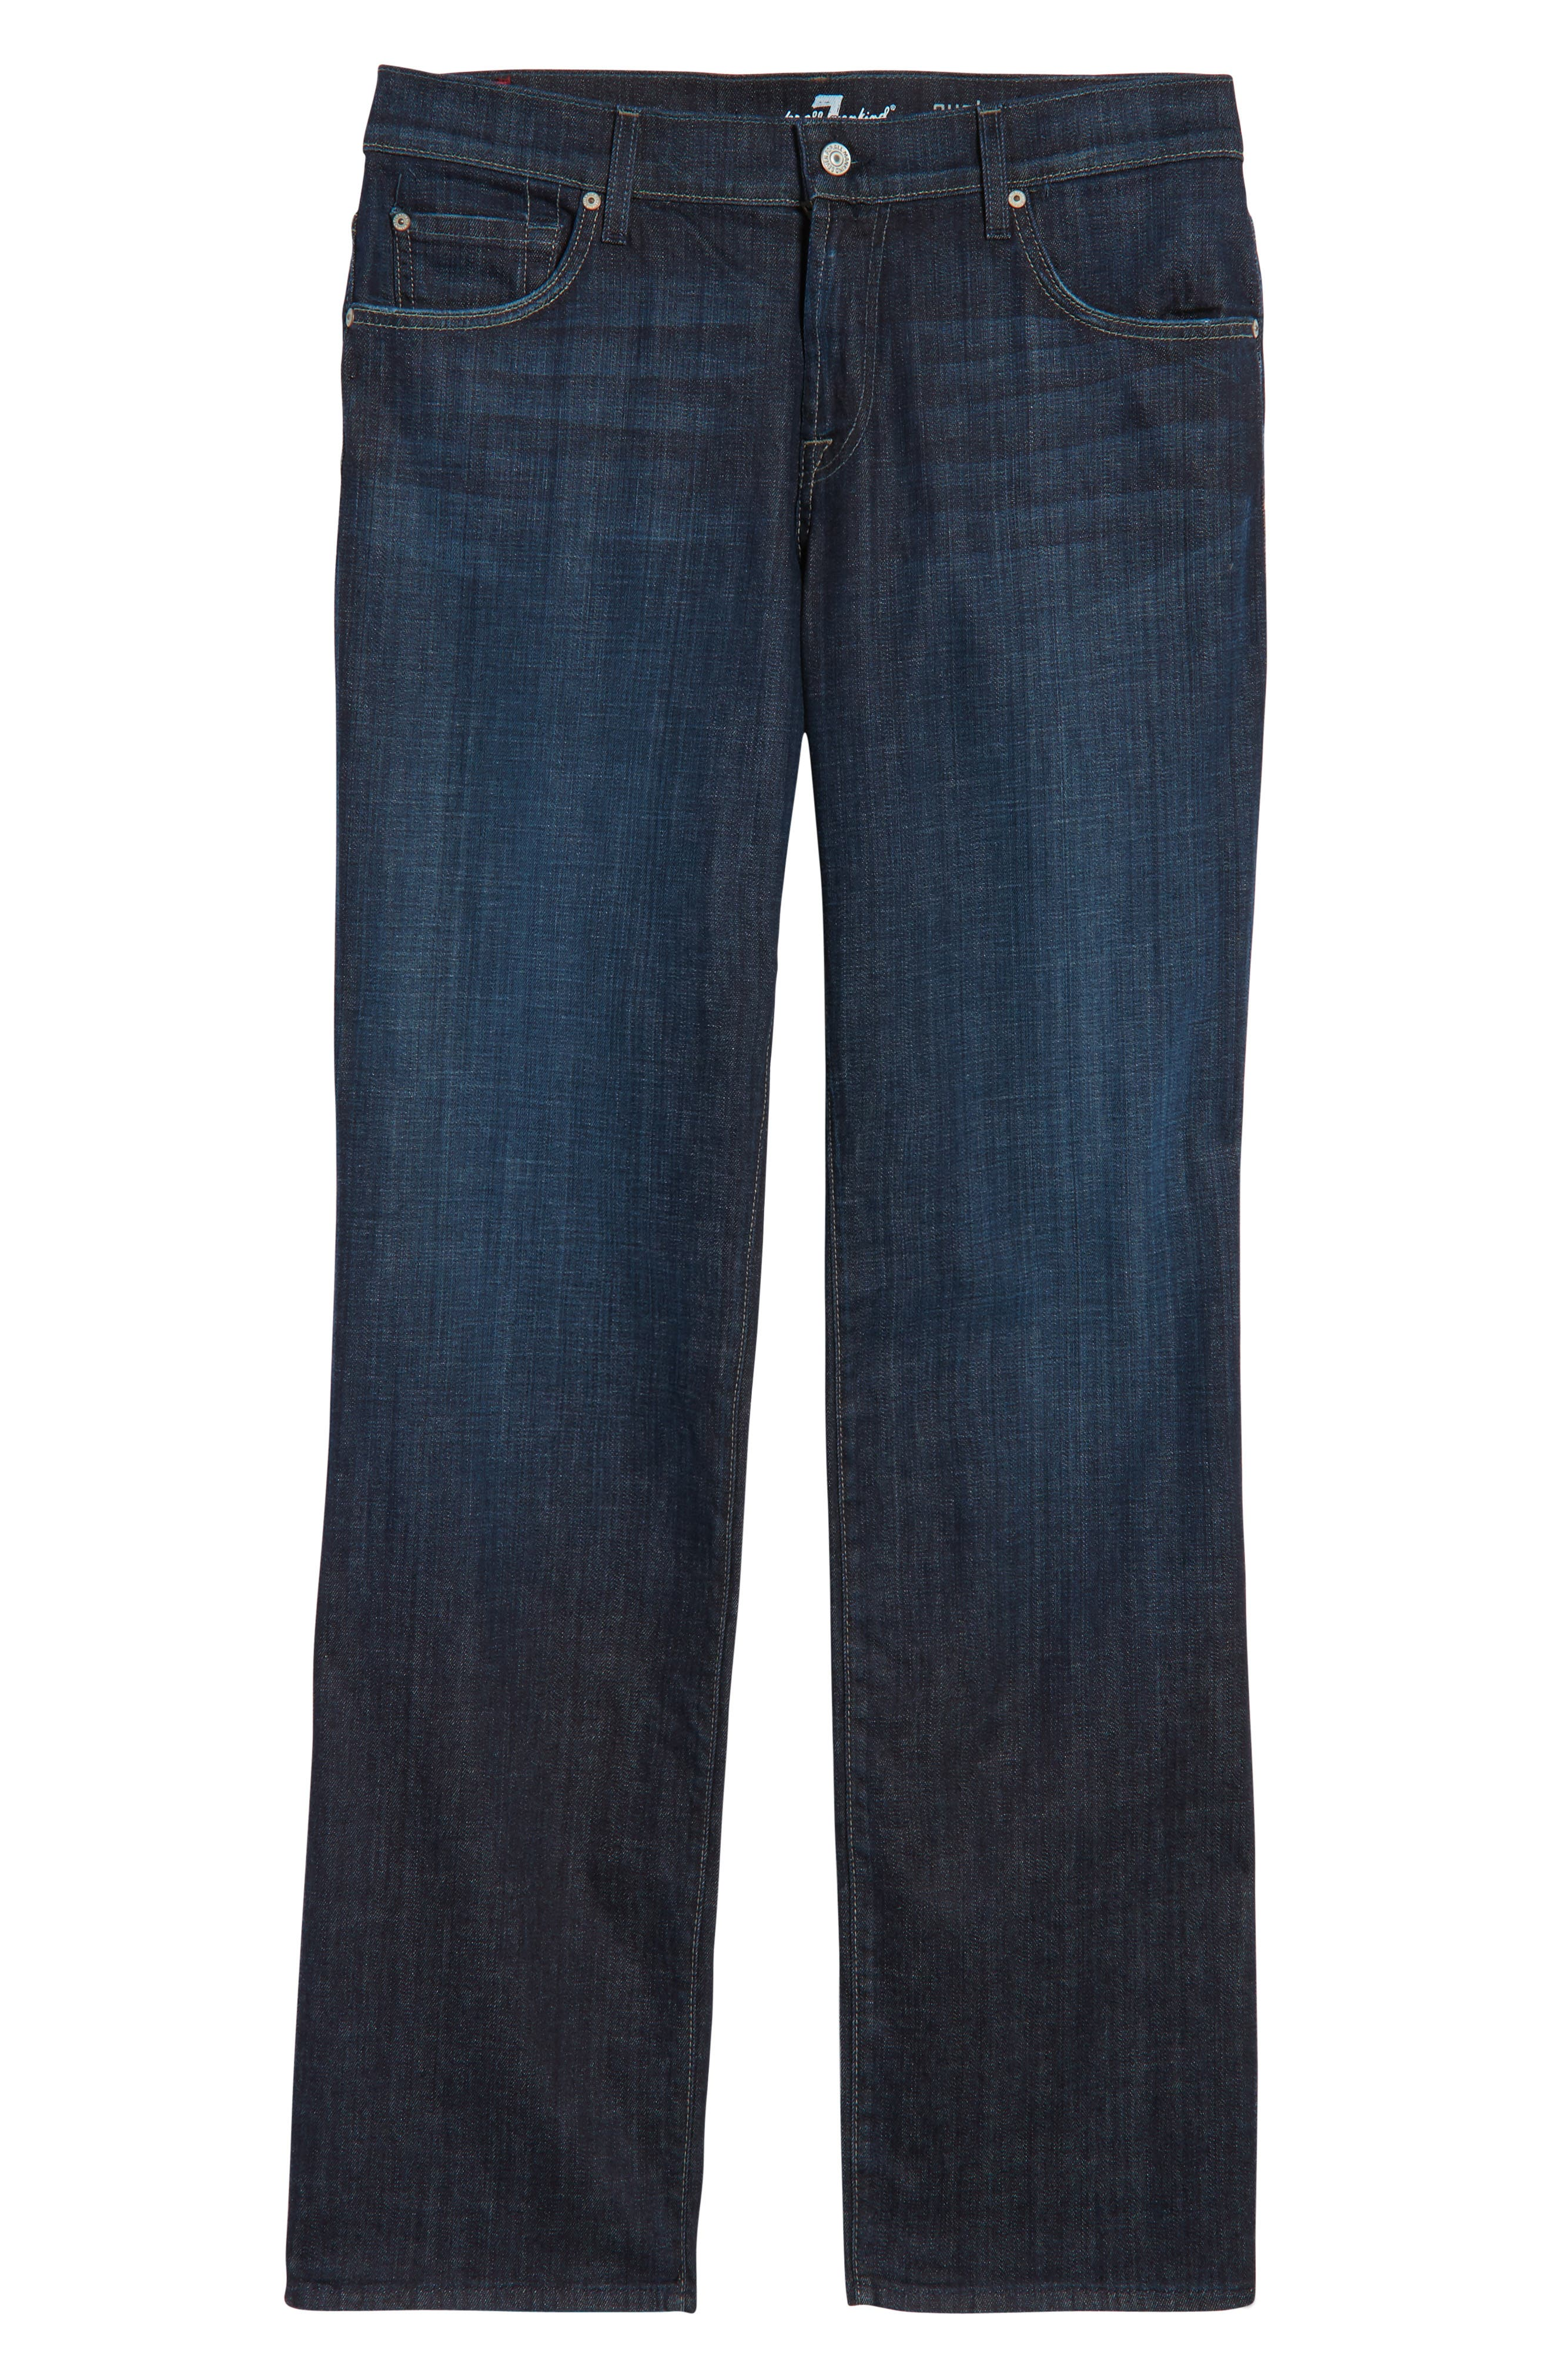 Austyn Relaxed Straight Leg Jeans,                             Main thumbnail 1, color,                             488